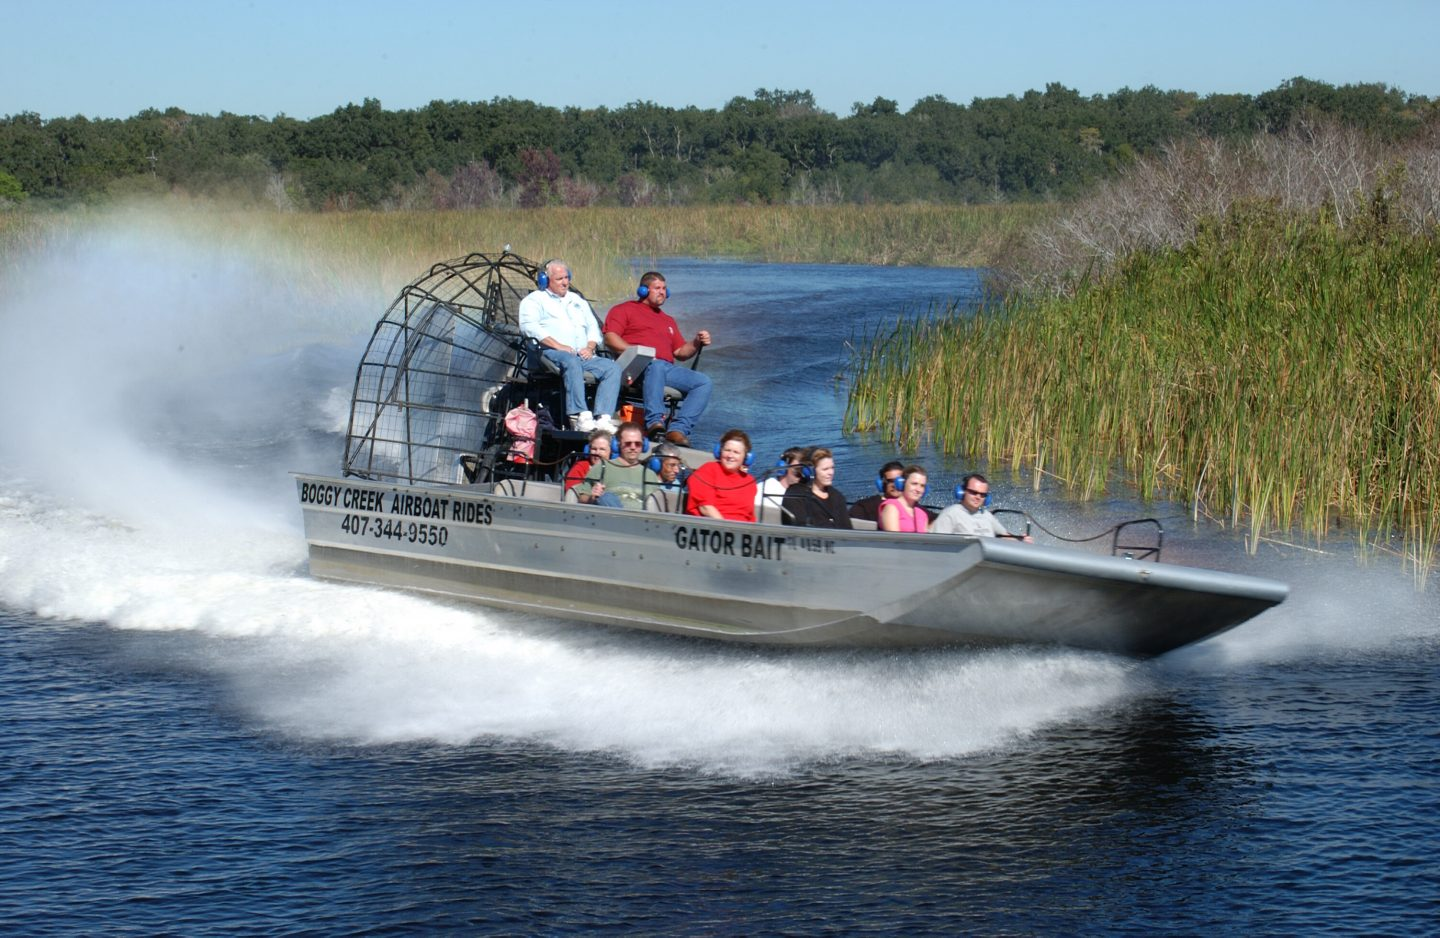 Things to do in Orlando- Boggy Creek Airboat Rides at Southport Park